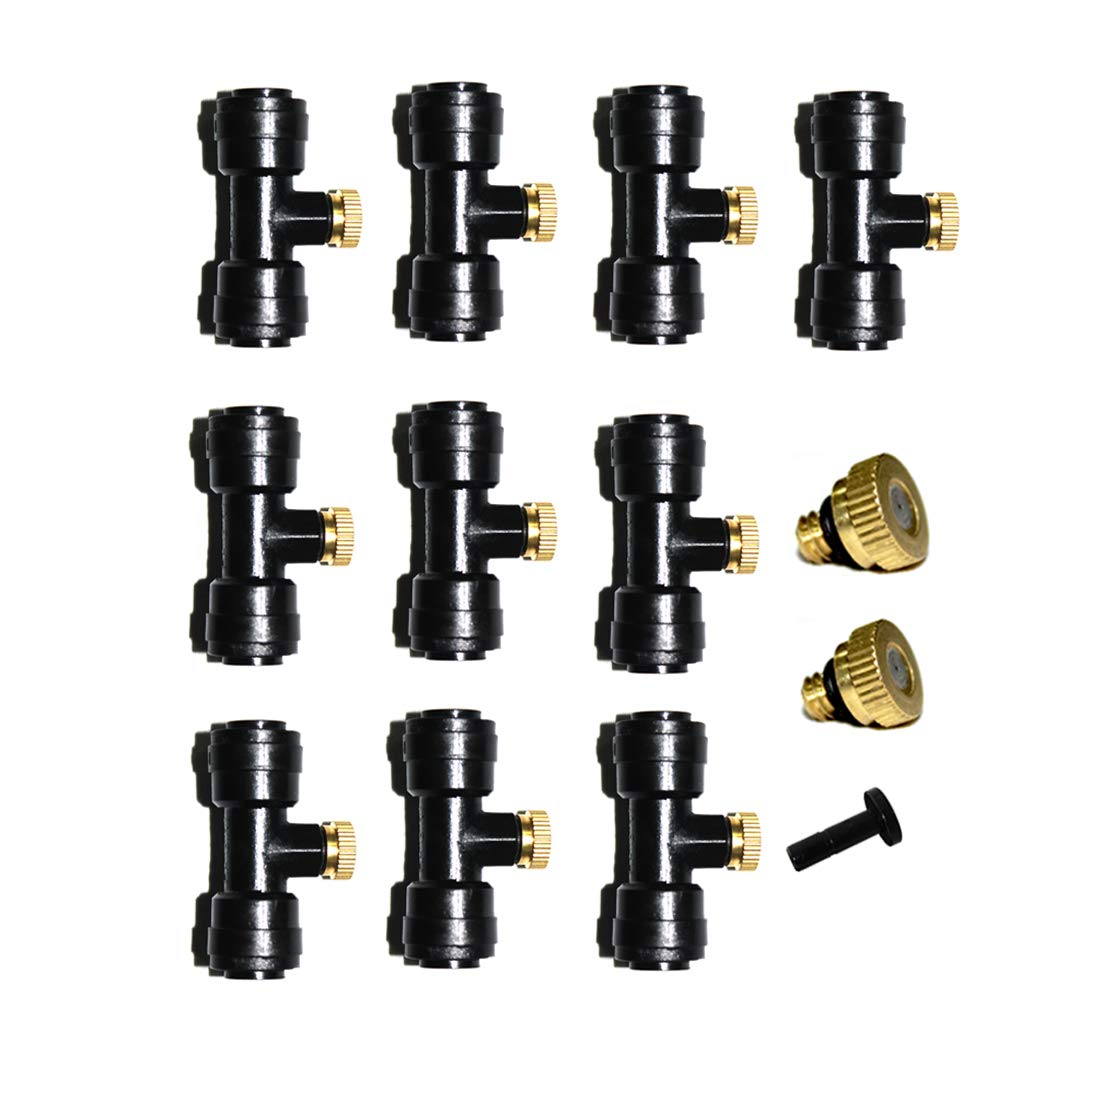 1/4'' Slip-Lock, Outdoor Misting Nozzle Tees, Water Brass Misting Mister Nozzle, Misting Nozzles Kit, with Thread 10/24 UNC Tees 10pcs +1Plug and 0.4mm Orifice Nozzle 12pcs, for Outdoor Cooling System 61AT58ko2BDL